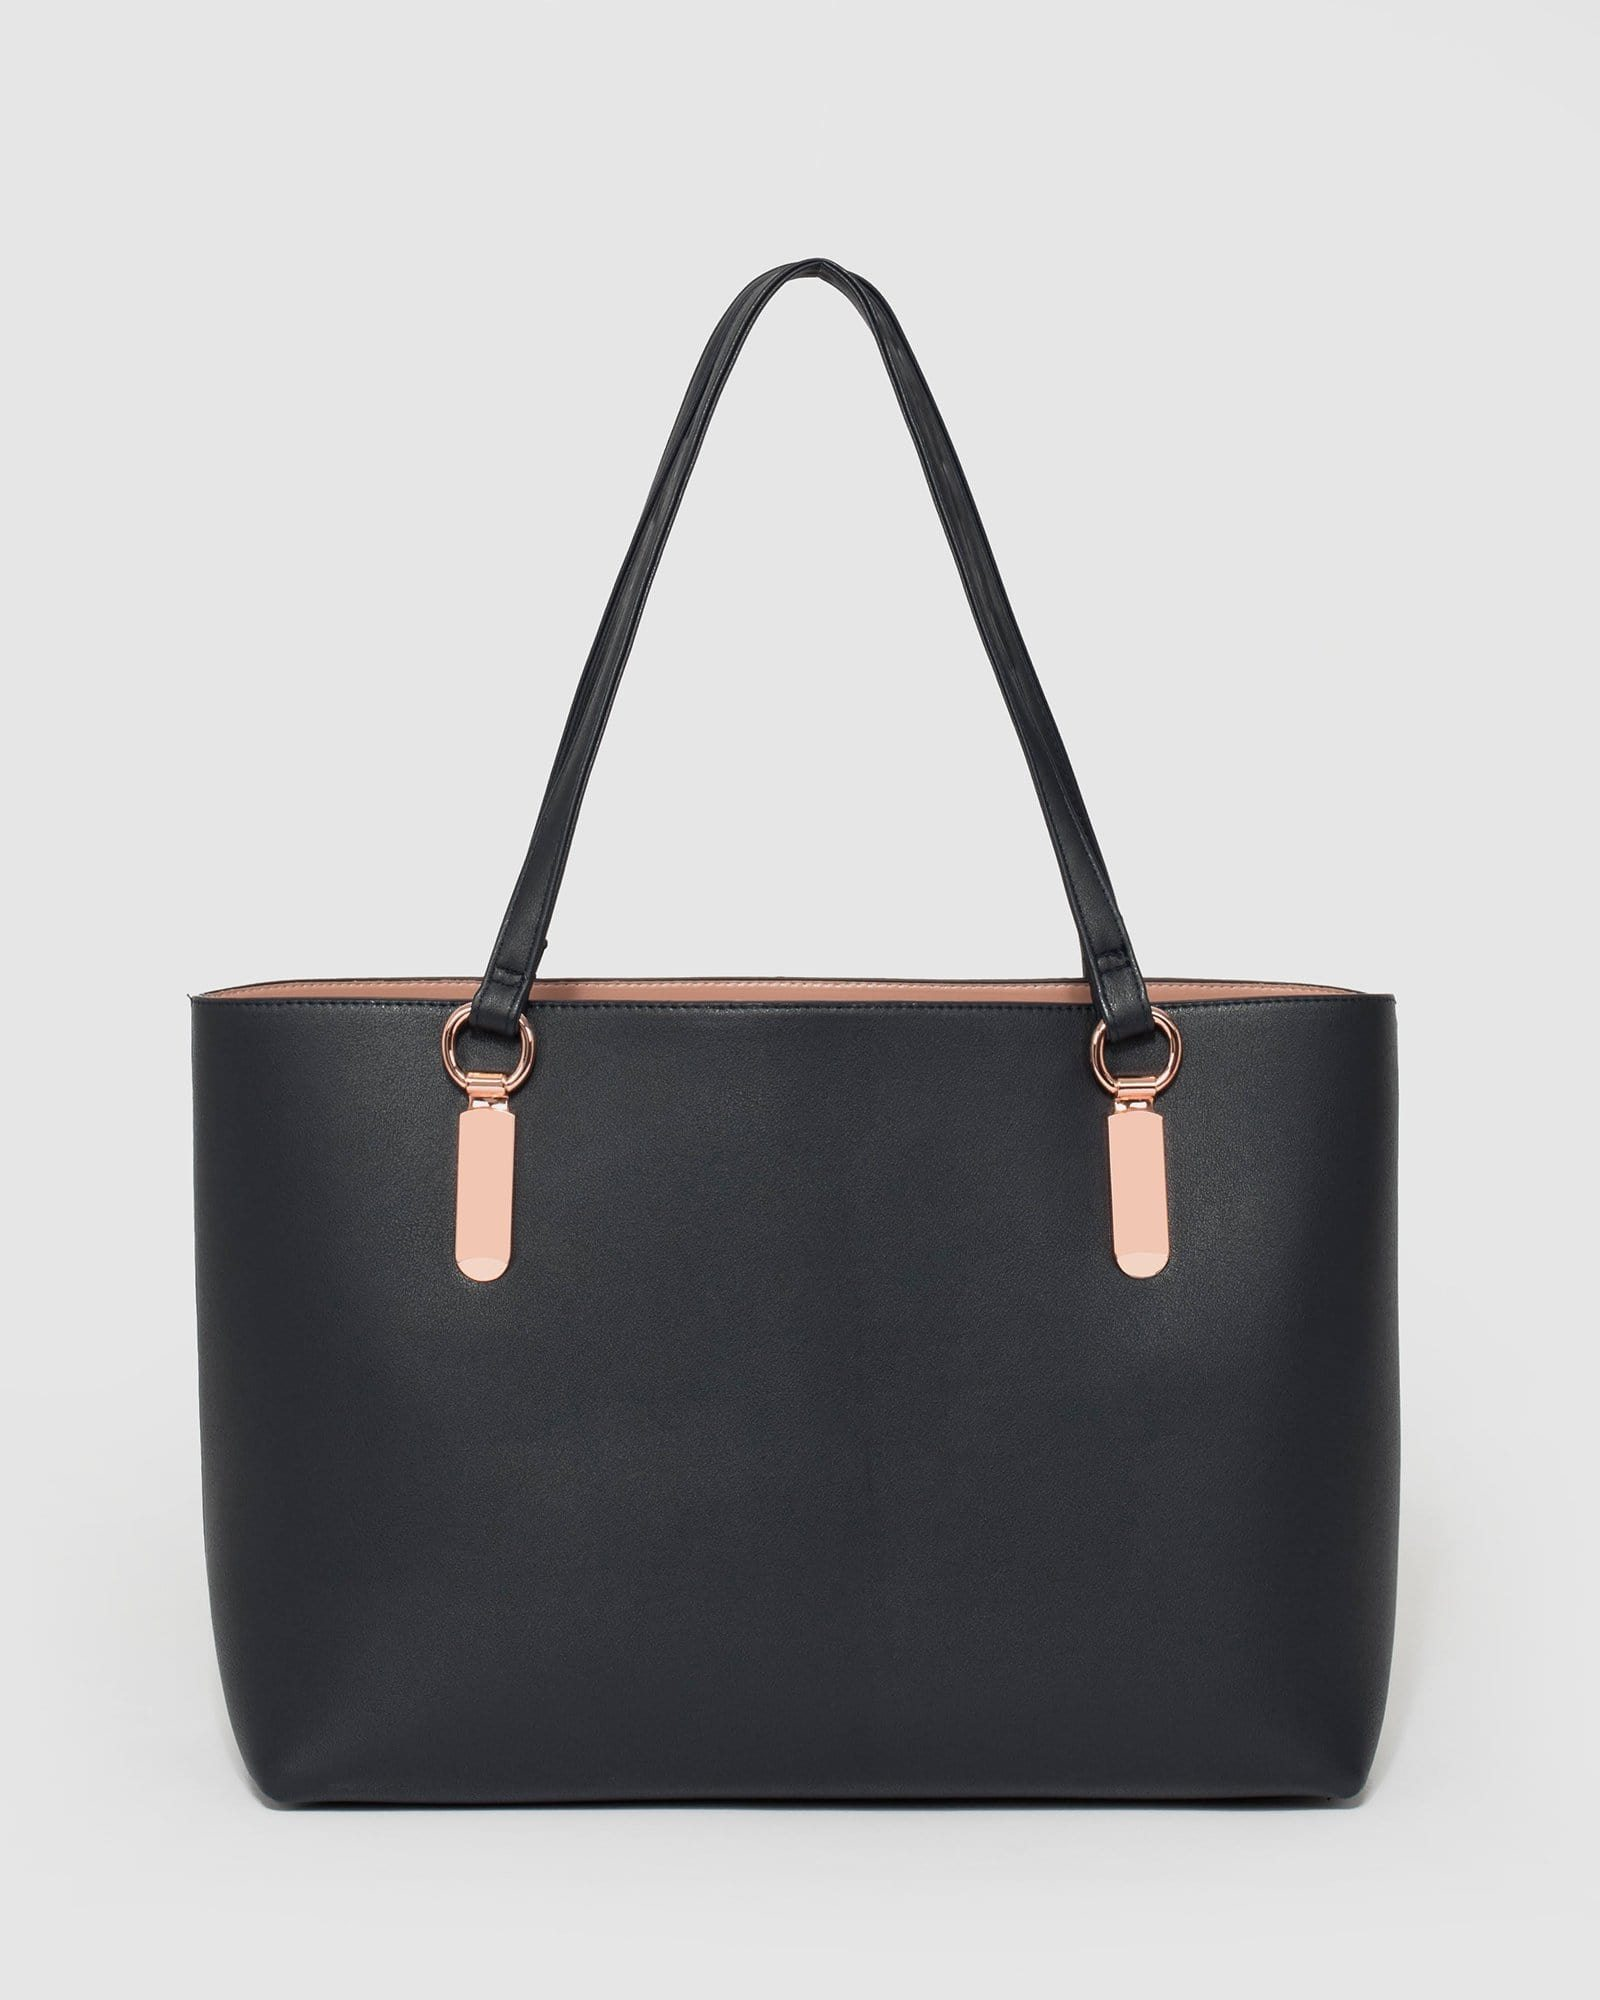 Image of Navy Blue Angelina Tote Bag